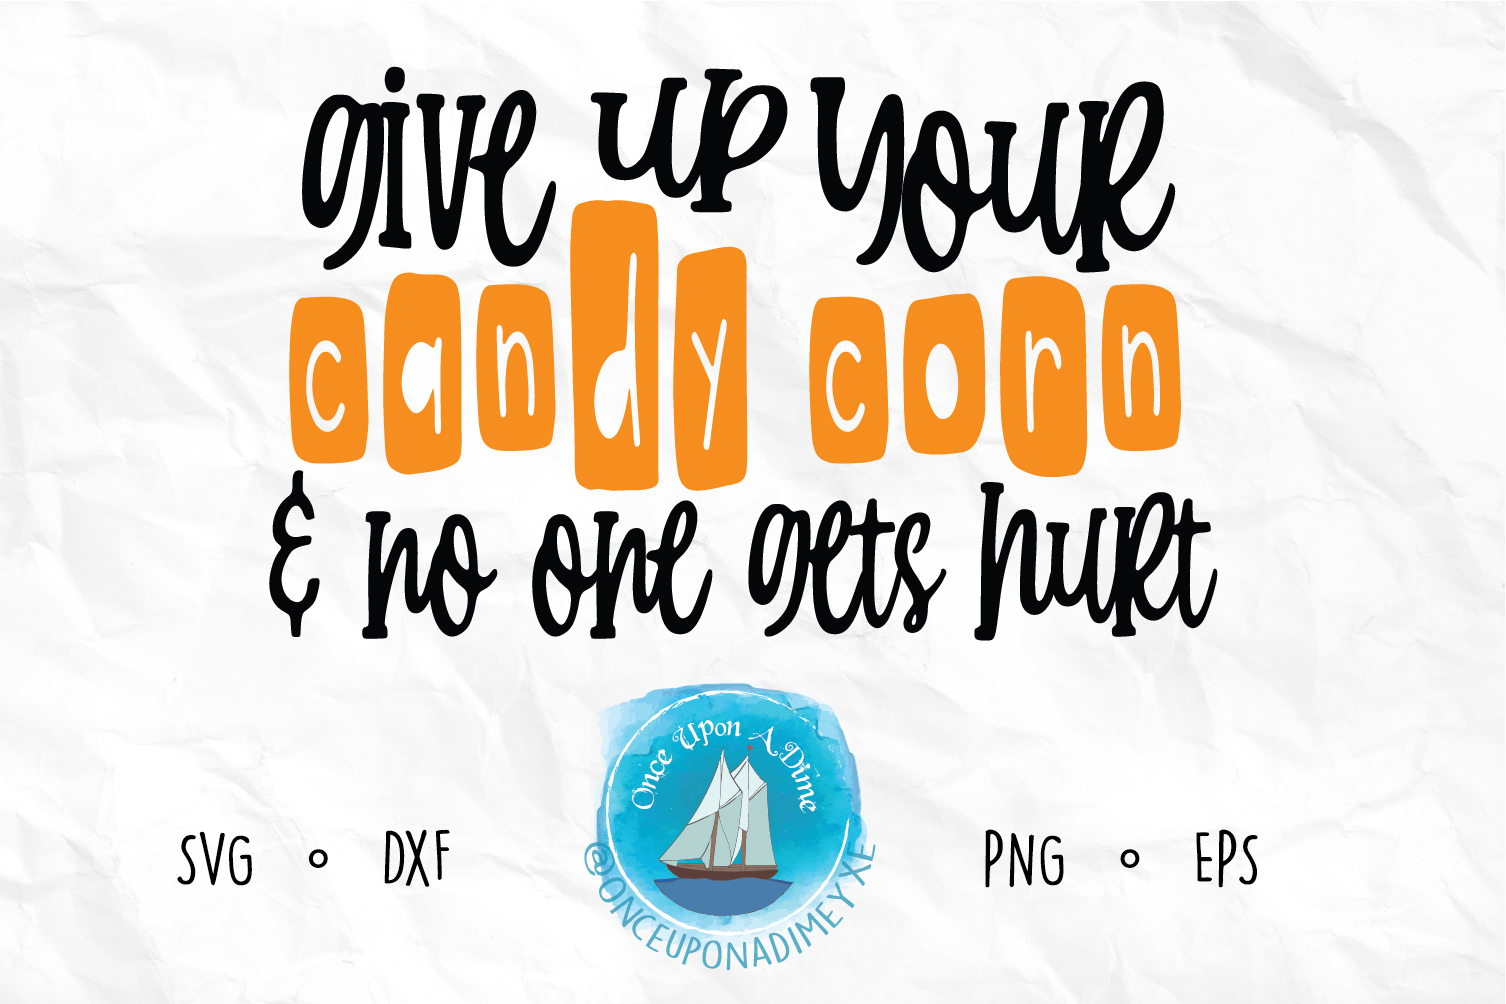 Download Free Give Up Your Candy Corn Halloween Graphic By Onceuponadimeyxe for Cricut Explore, Silhouette and other cutting machines.